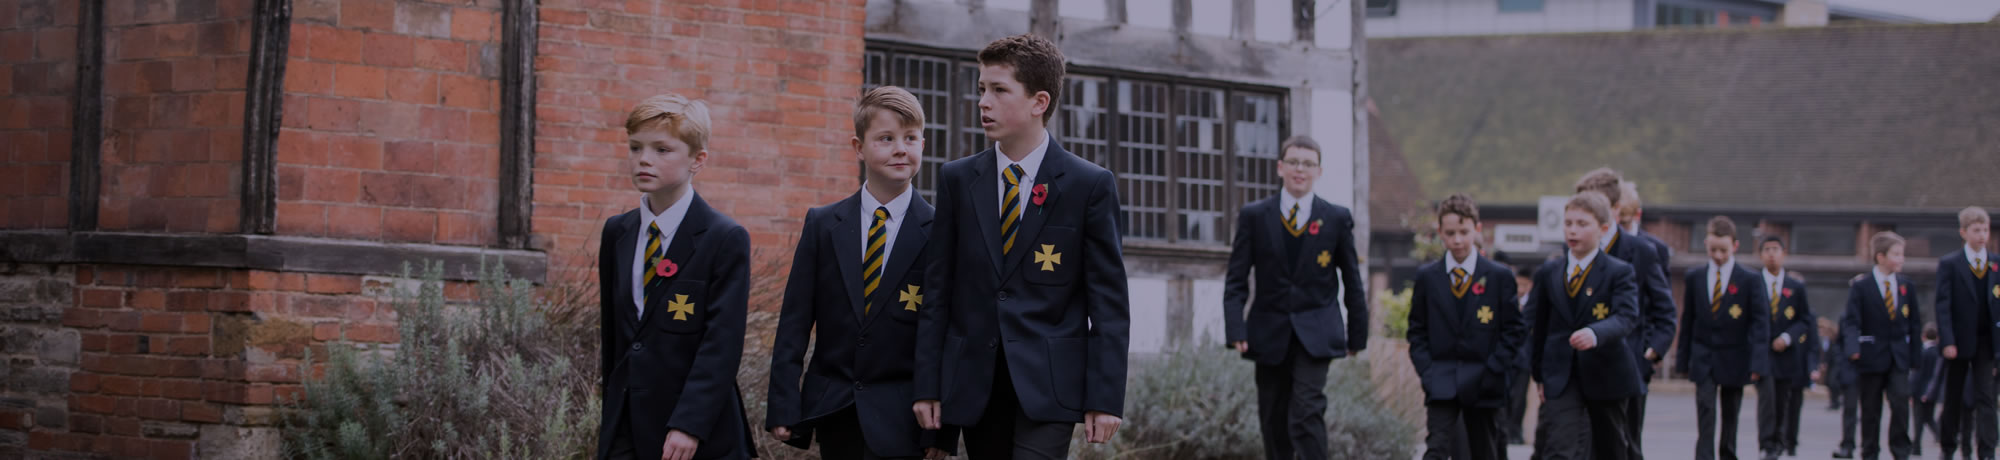 """""""An exemplary grammar school with a unique and inspiring history""""<br /><br />DAILY TELEGRAPH"""